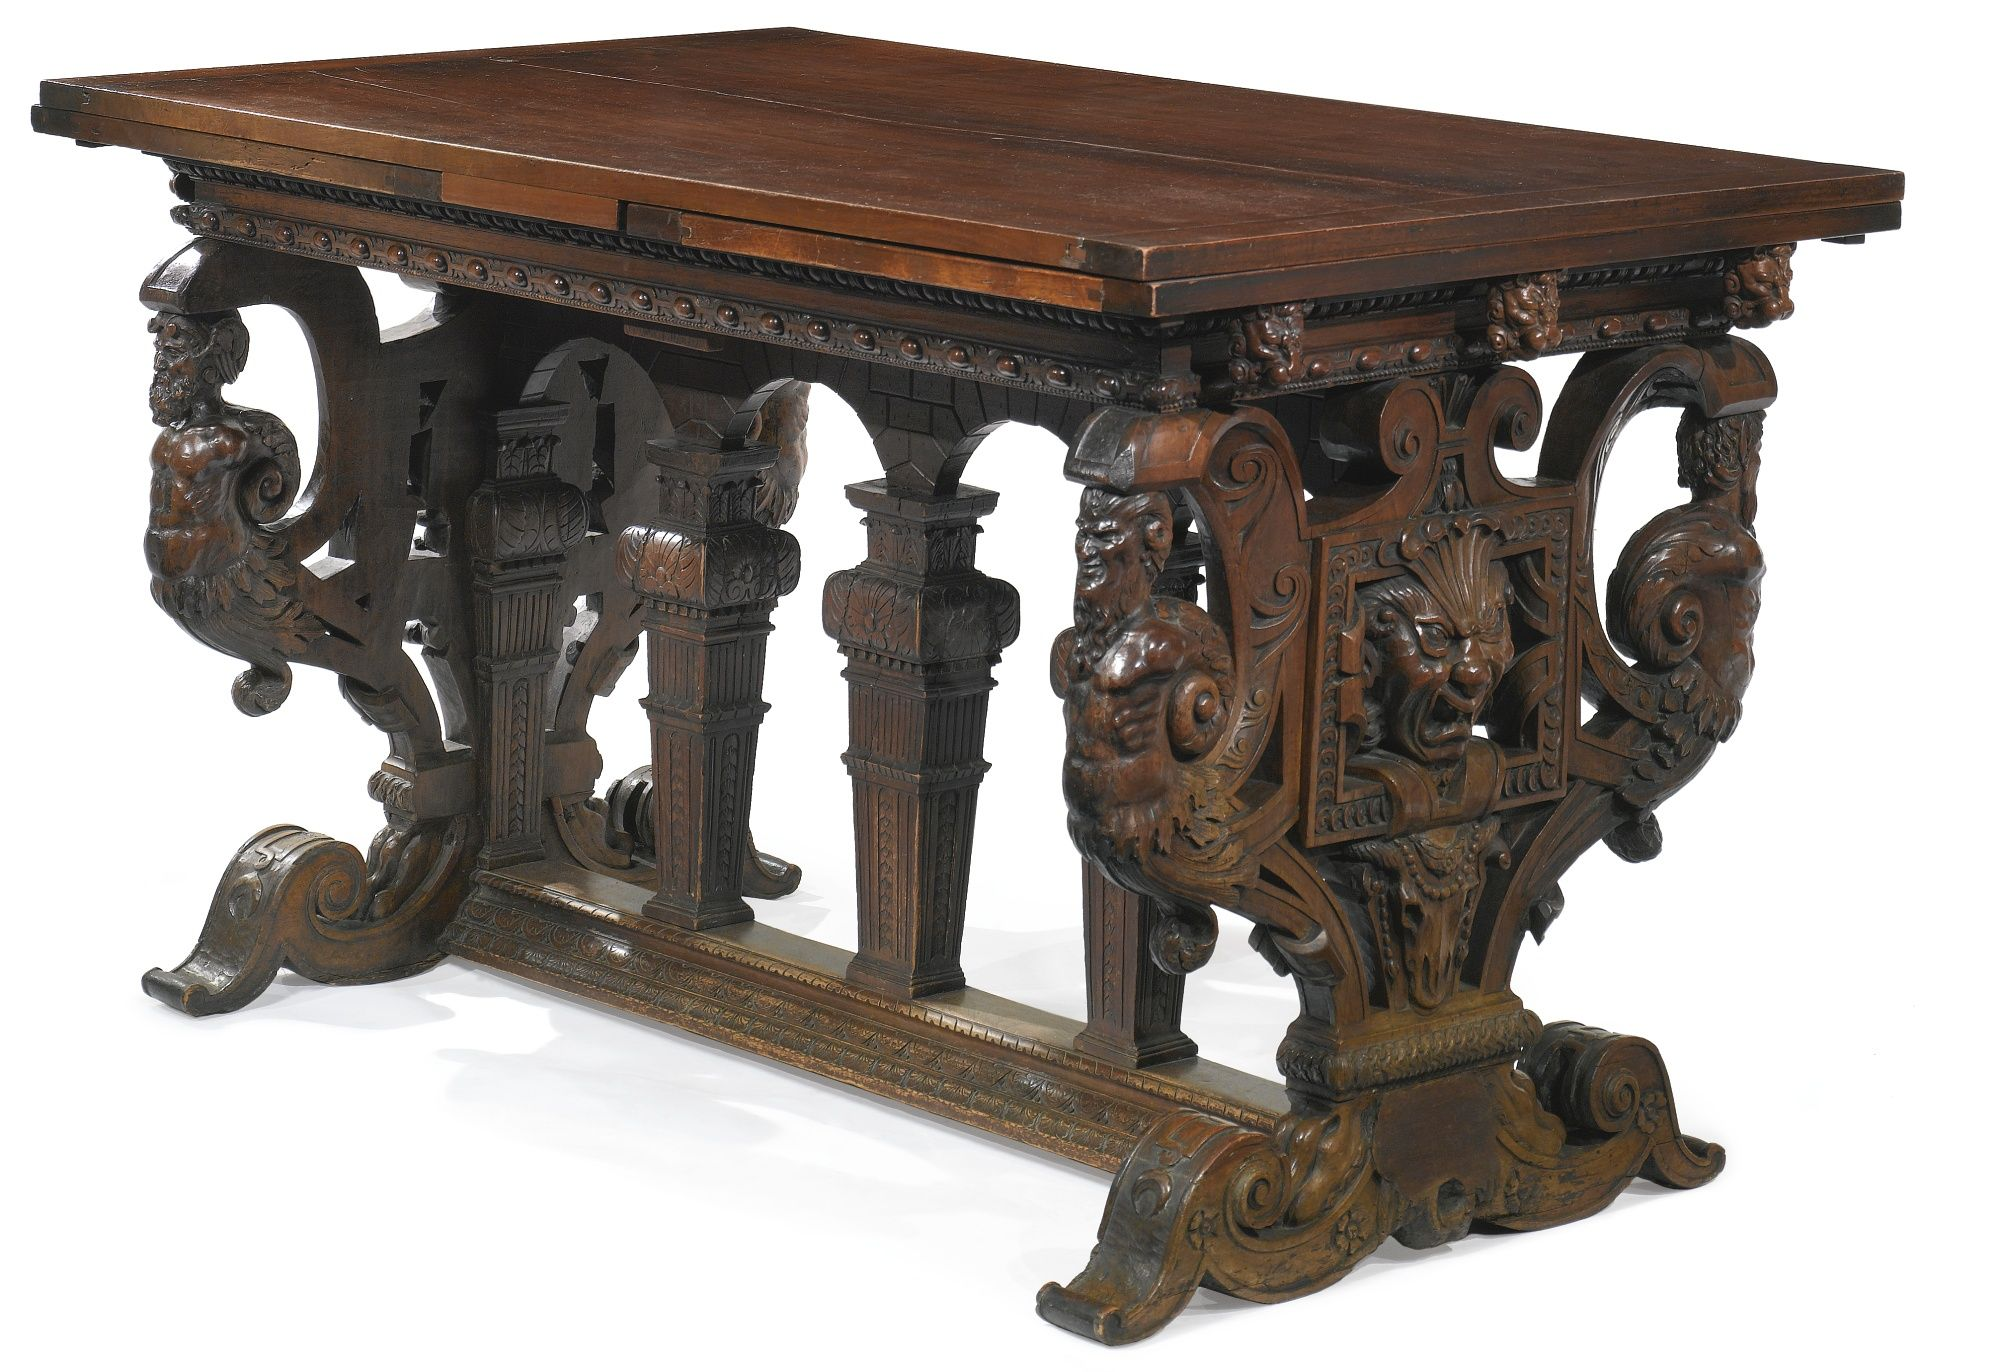 This Italian Renaissance table was carved from walnut wood It is known as a table